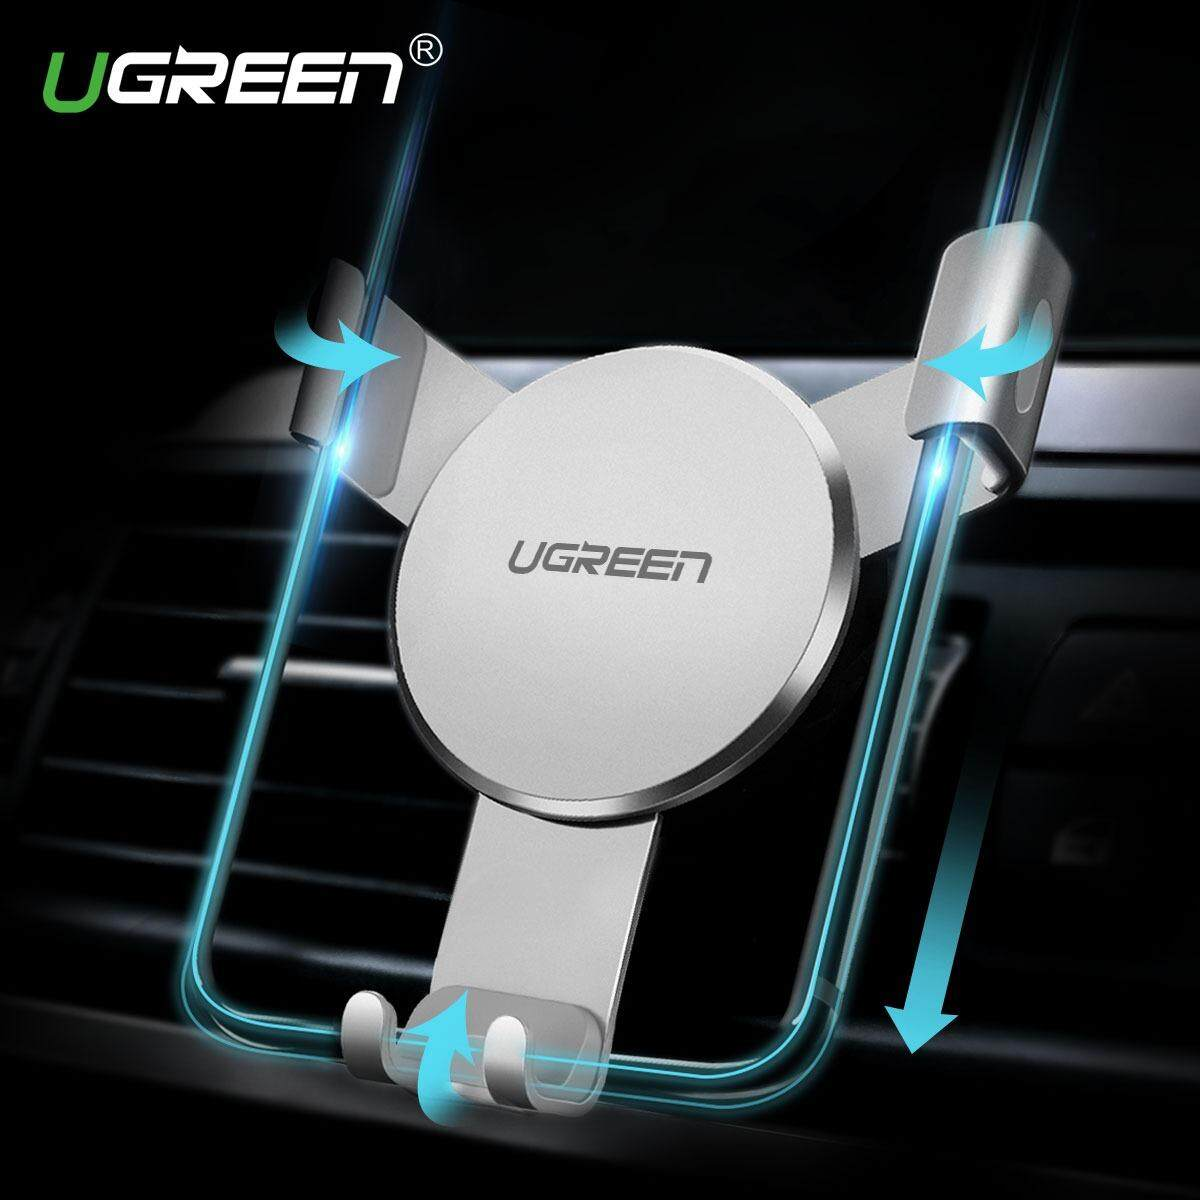 UGREEN Air Vent Gravity Car Phone Holder Mobile Phone Holder Stand for Xiaomi Redmi 6A Pocophone